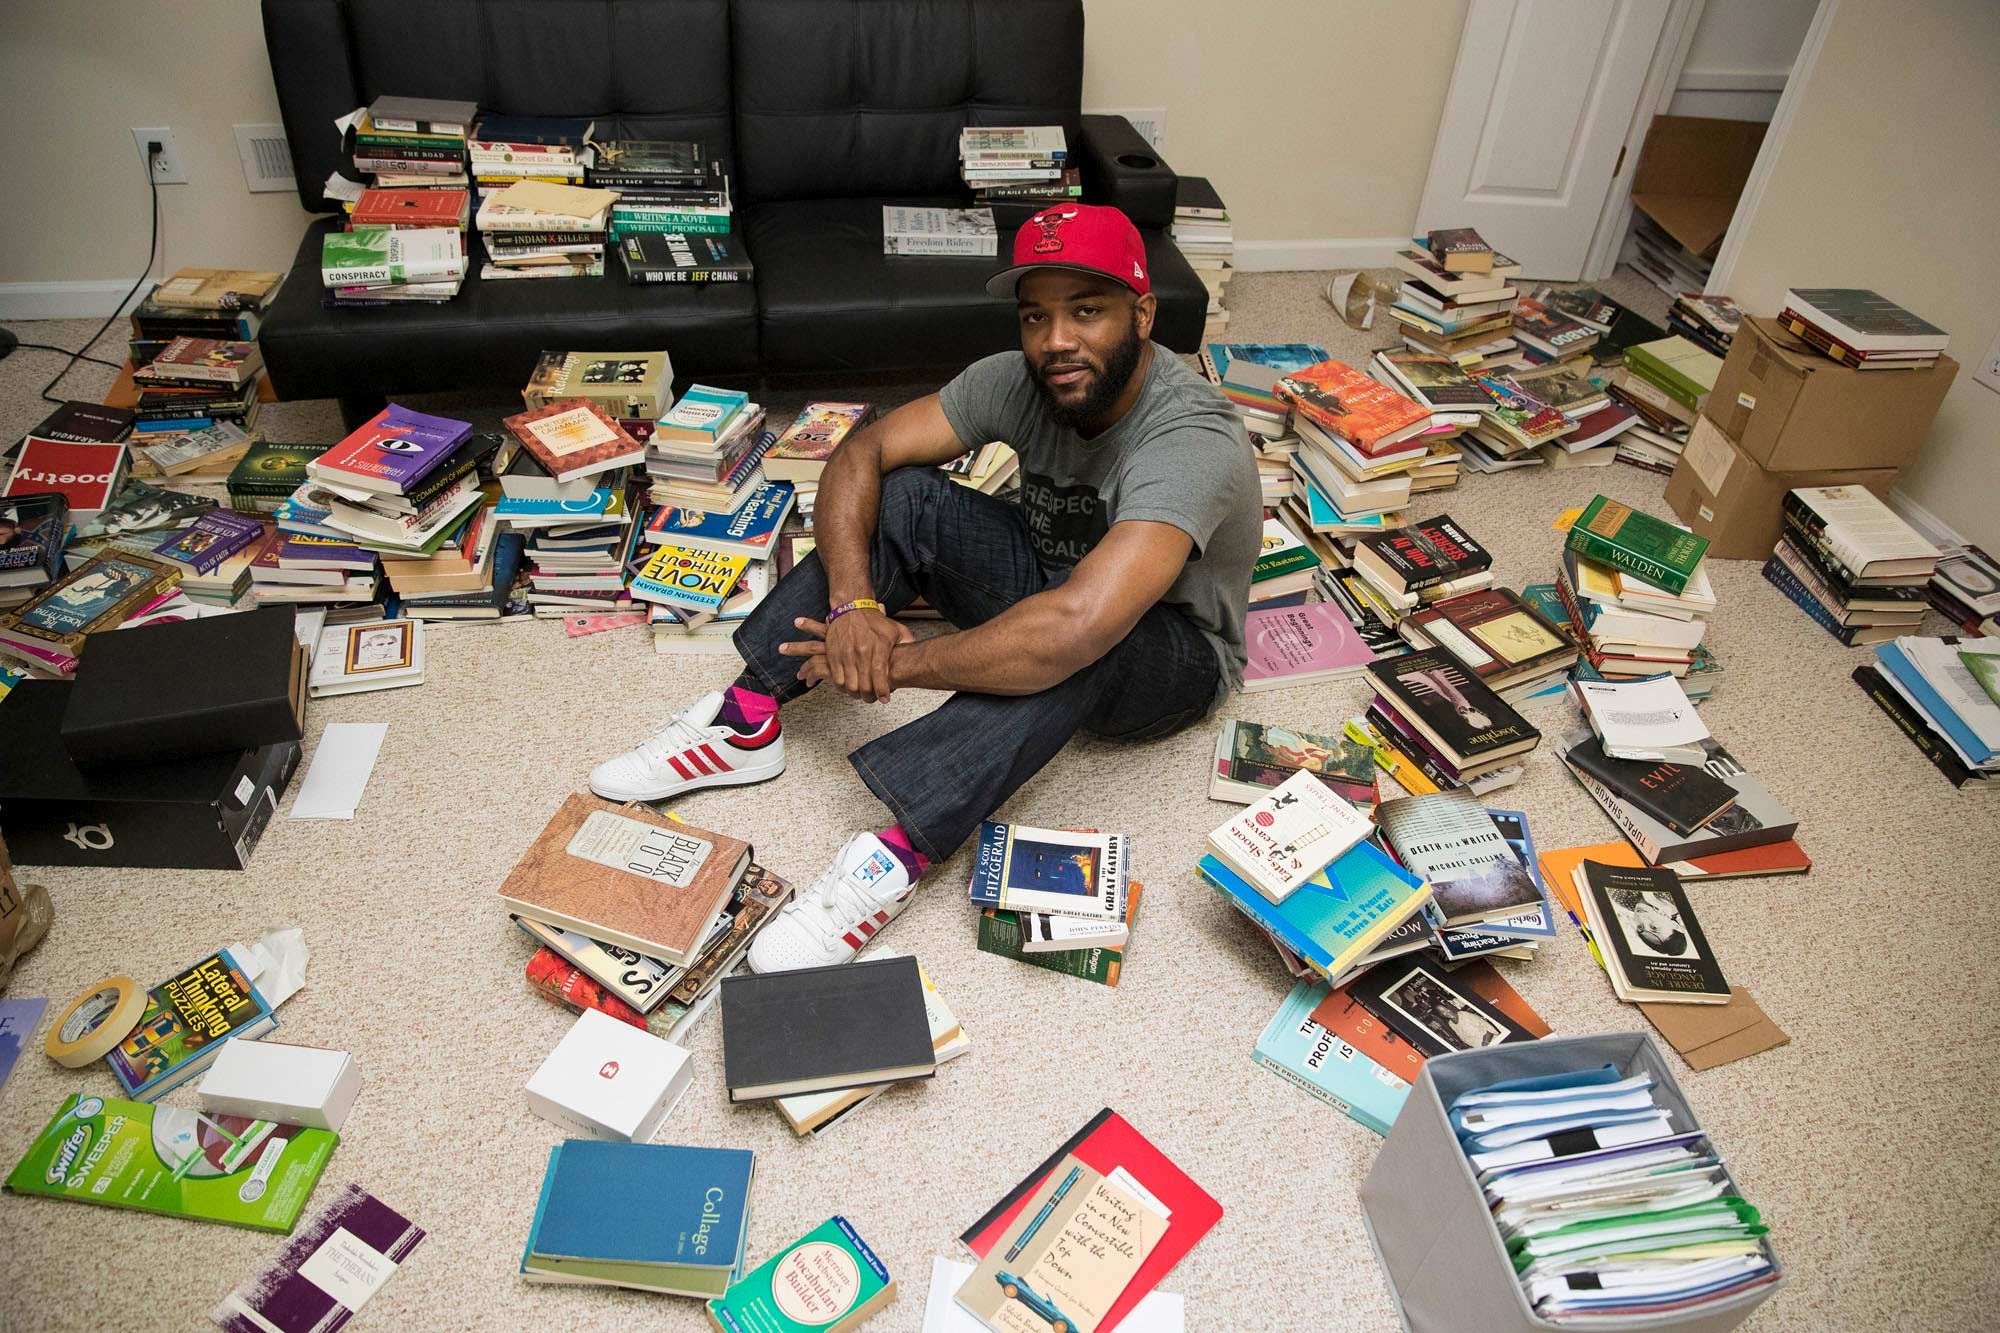 Carson in his new home in Charlottesville, amongst the extensive collection of books he relies on as he writes new songs.